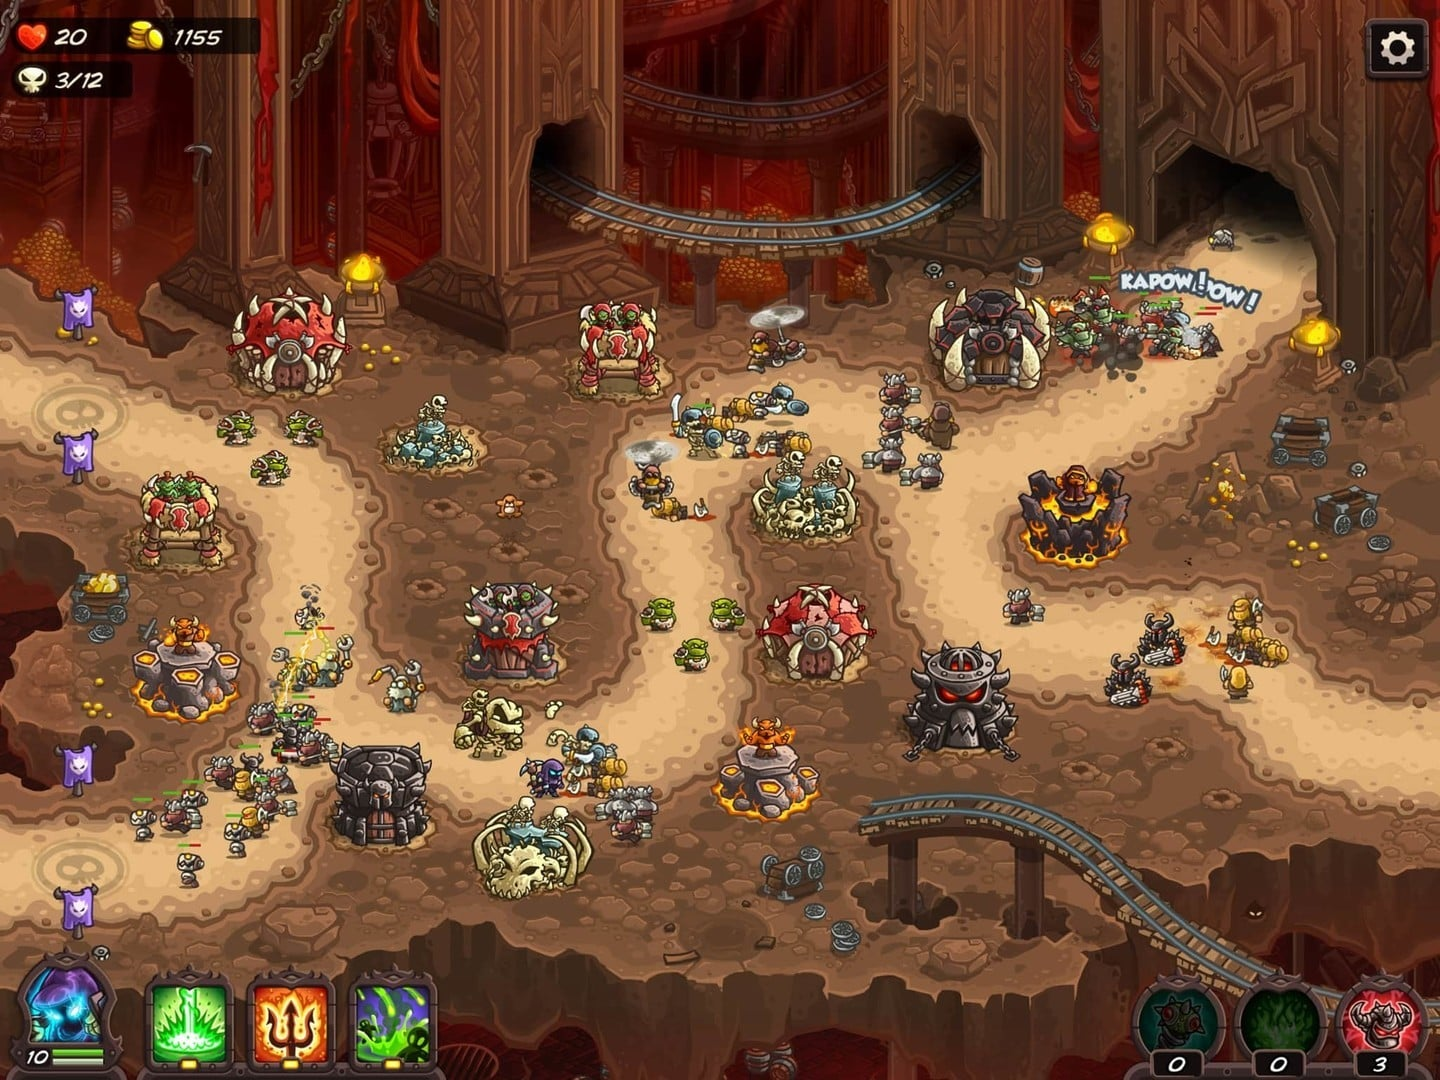 Kingdom Rush Vengeance Delivers a New Chapter in the Popular